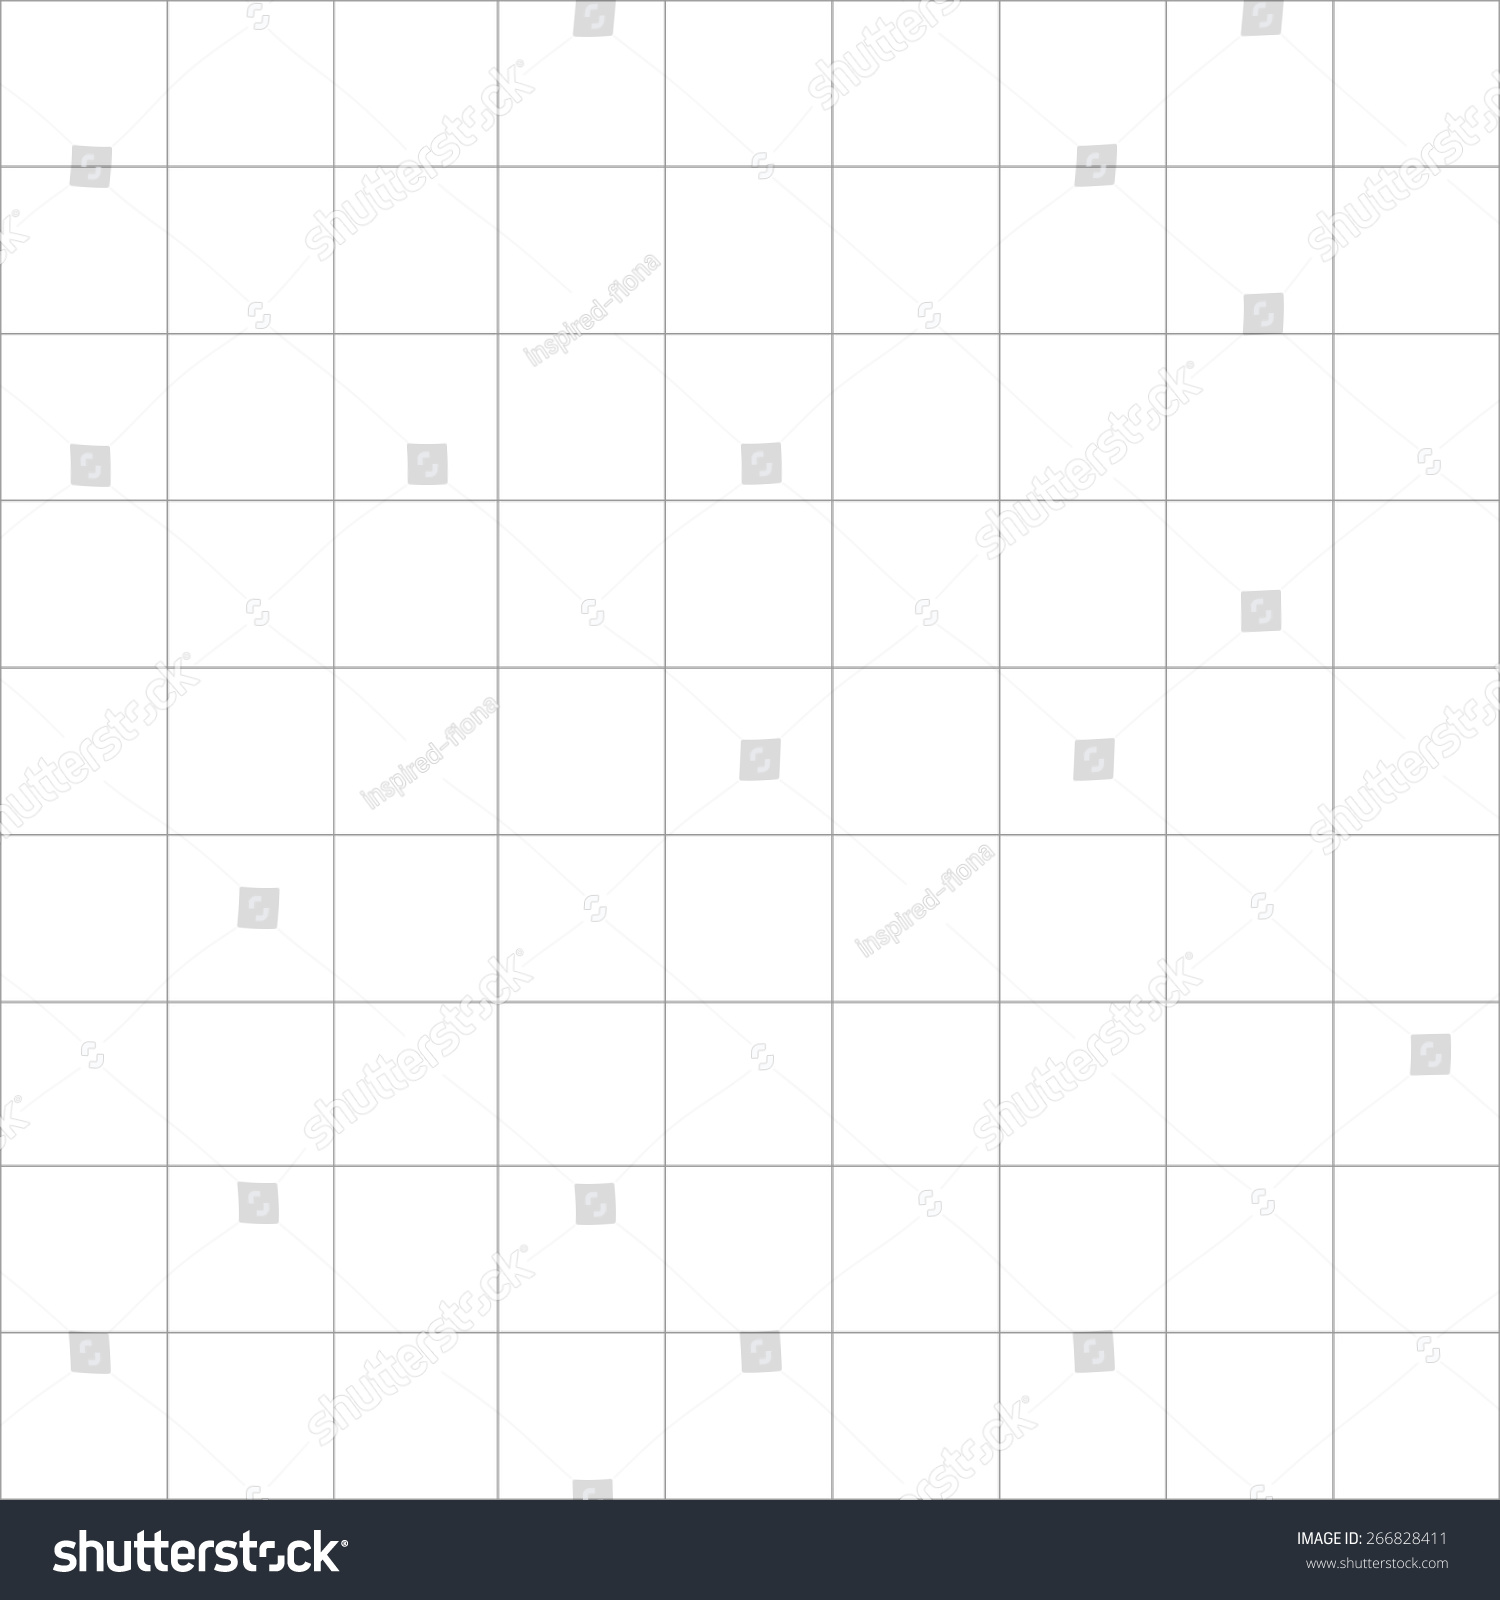 Blueprint technical grid background graphing scale stock for Blueprint scale